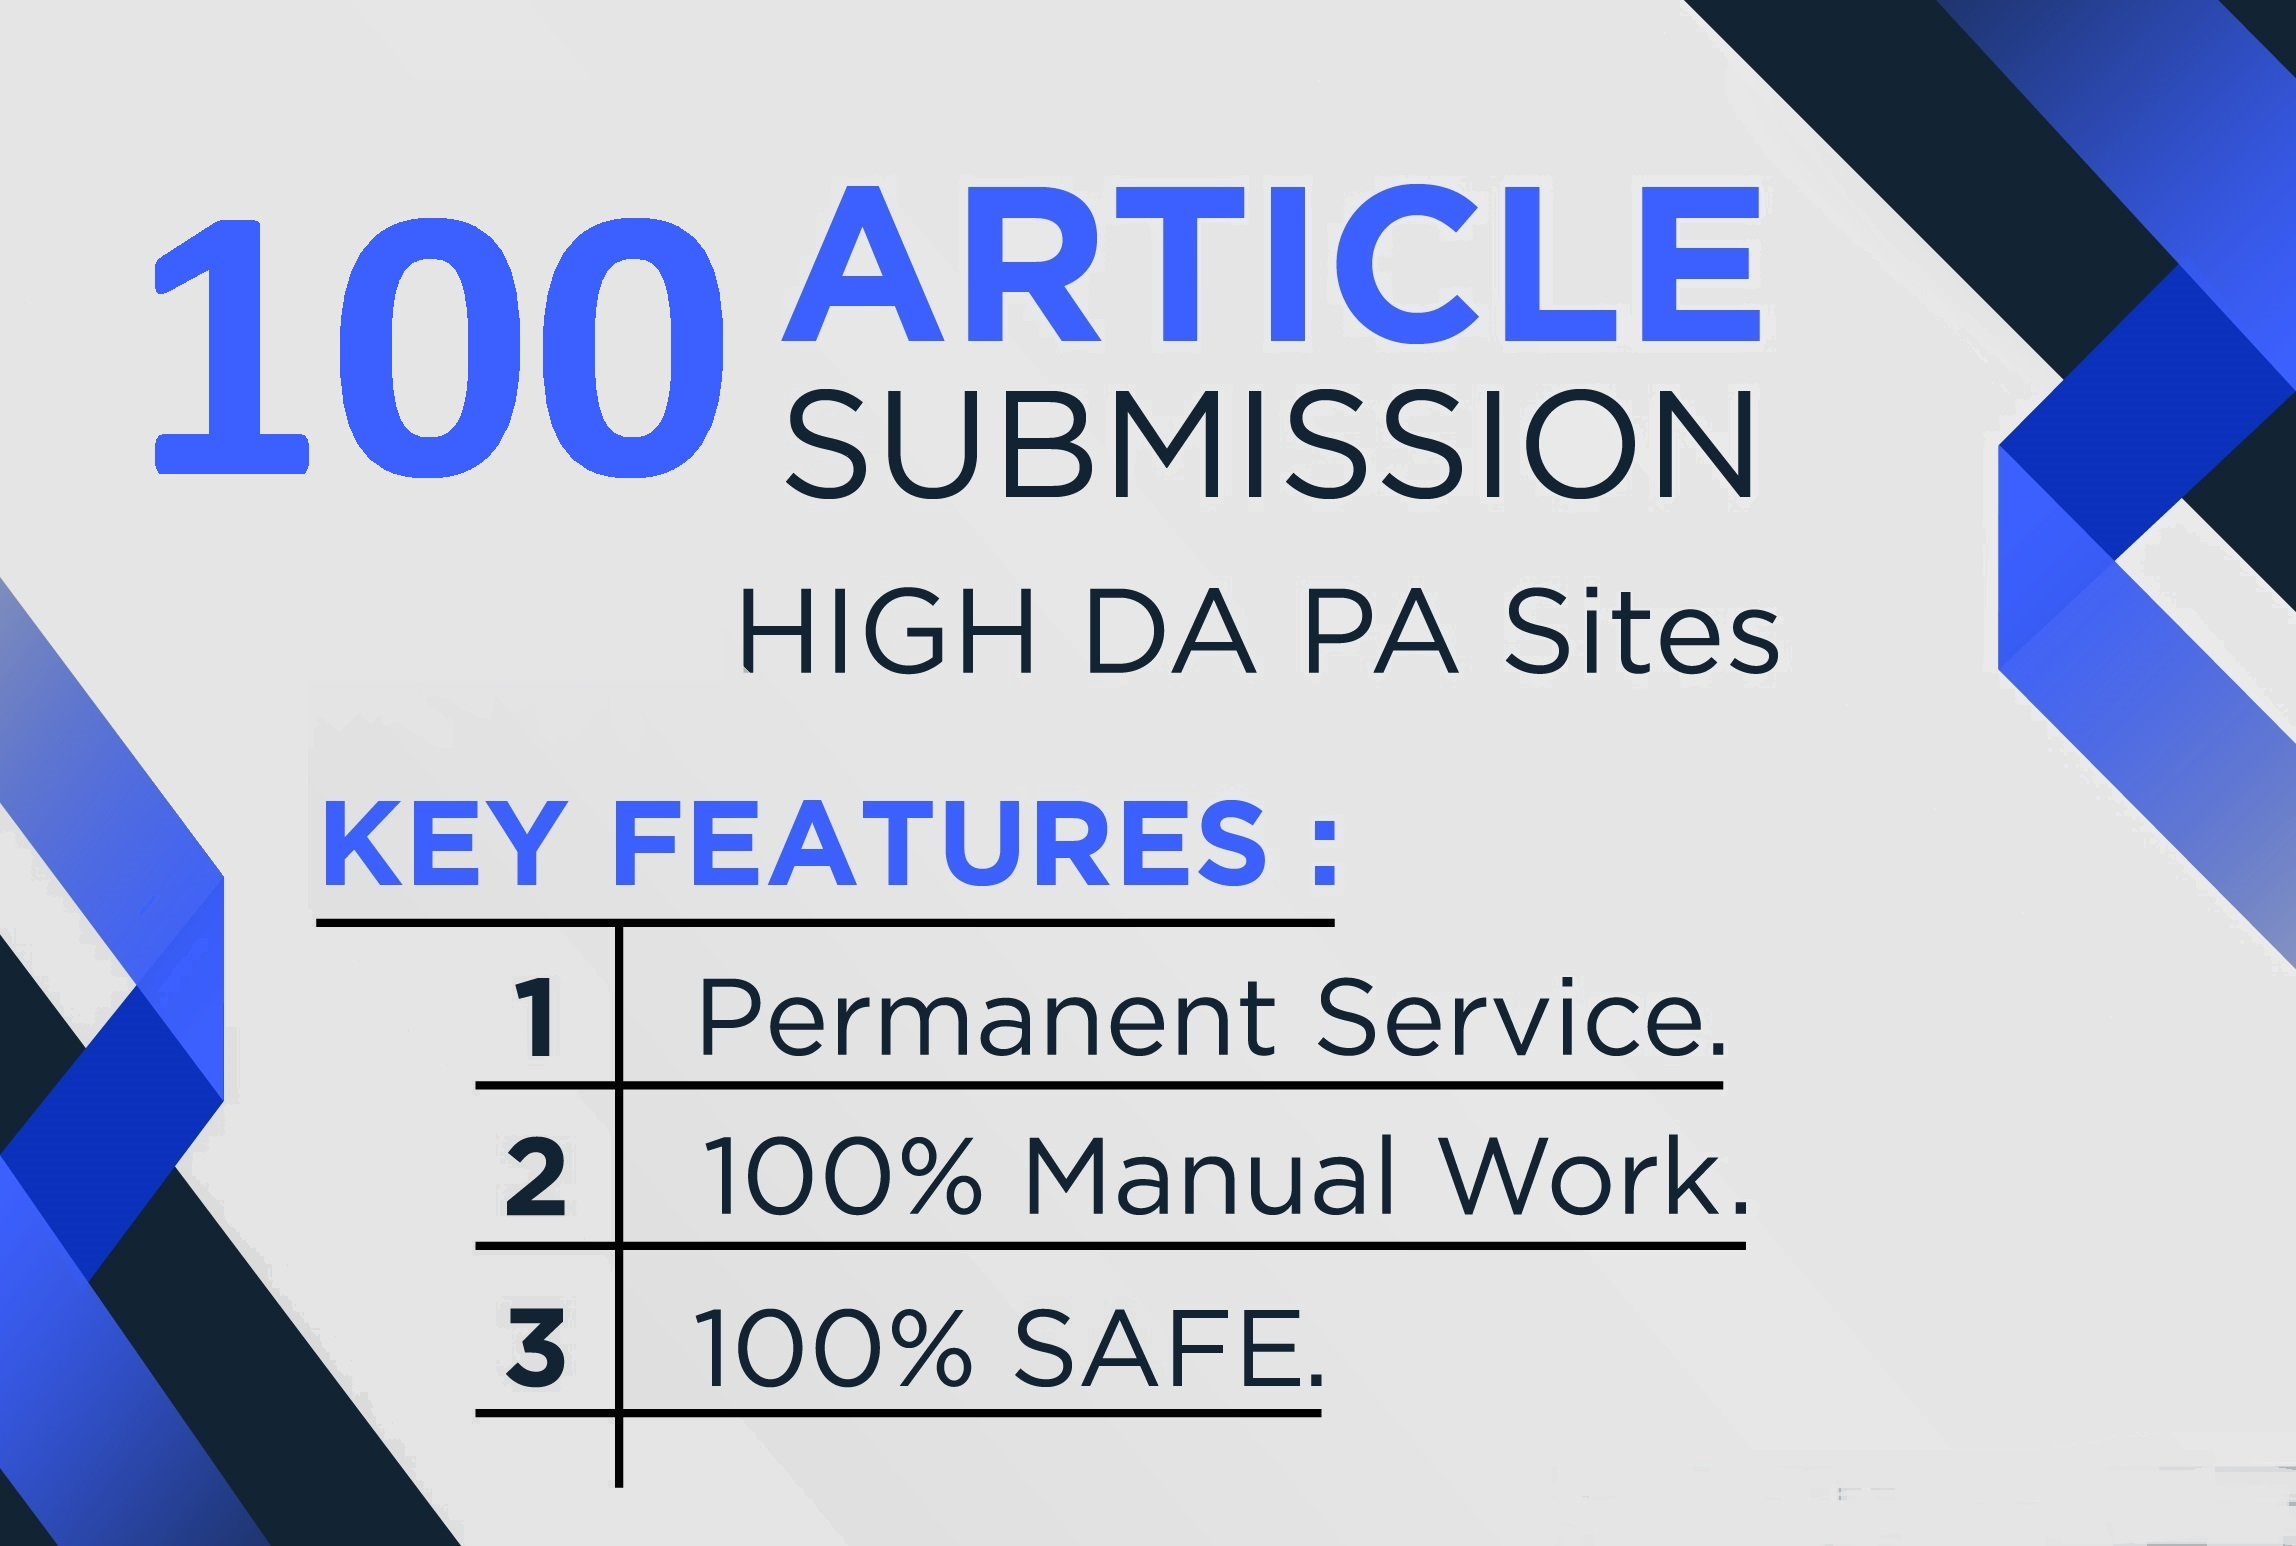 I will manually create 100 article submission on high DA PA sites